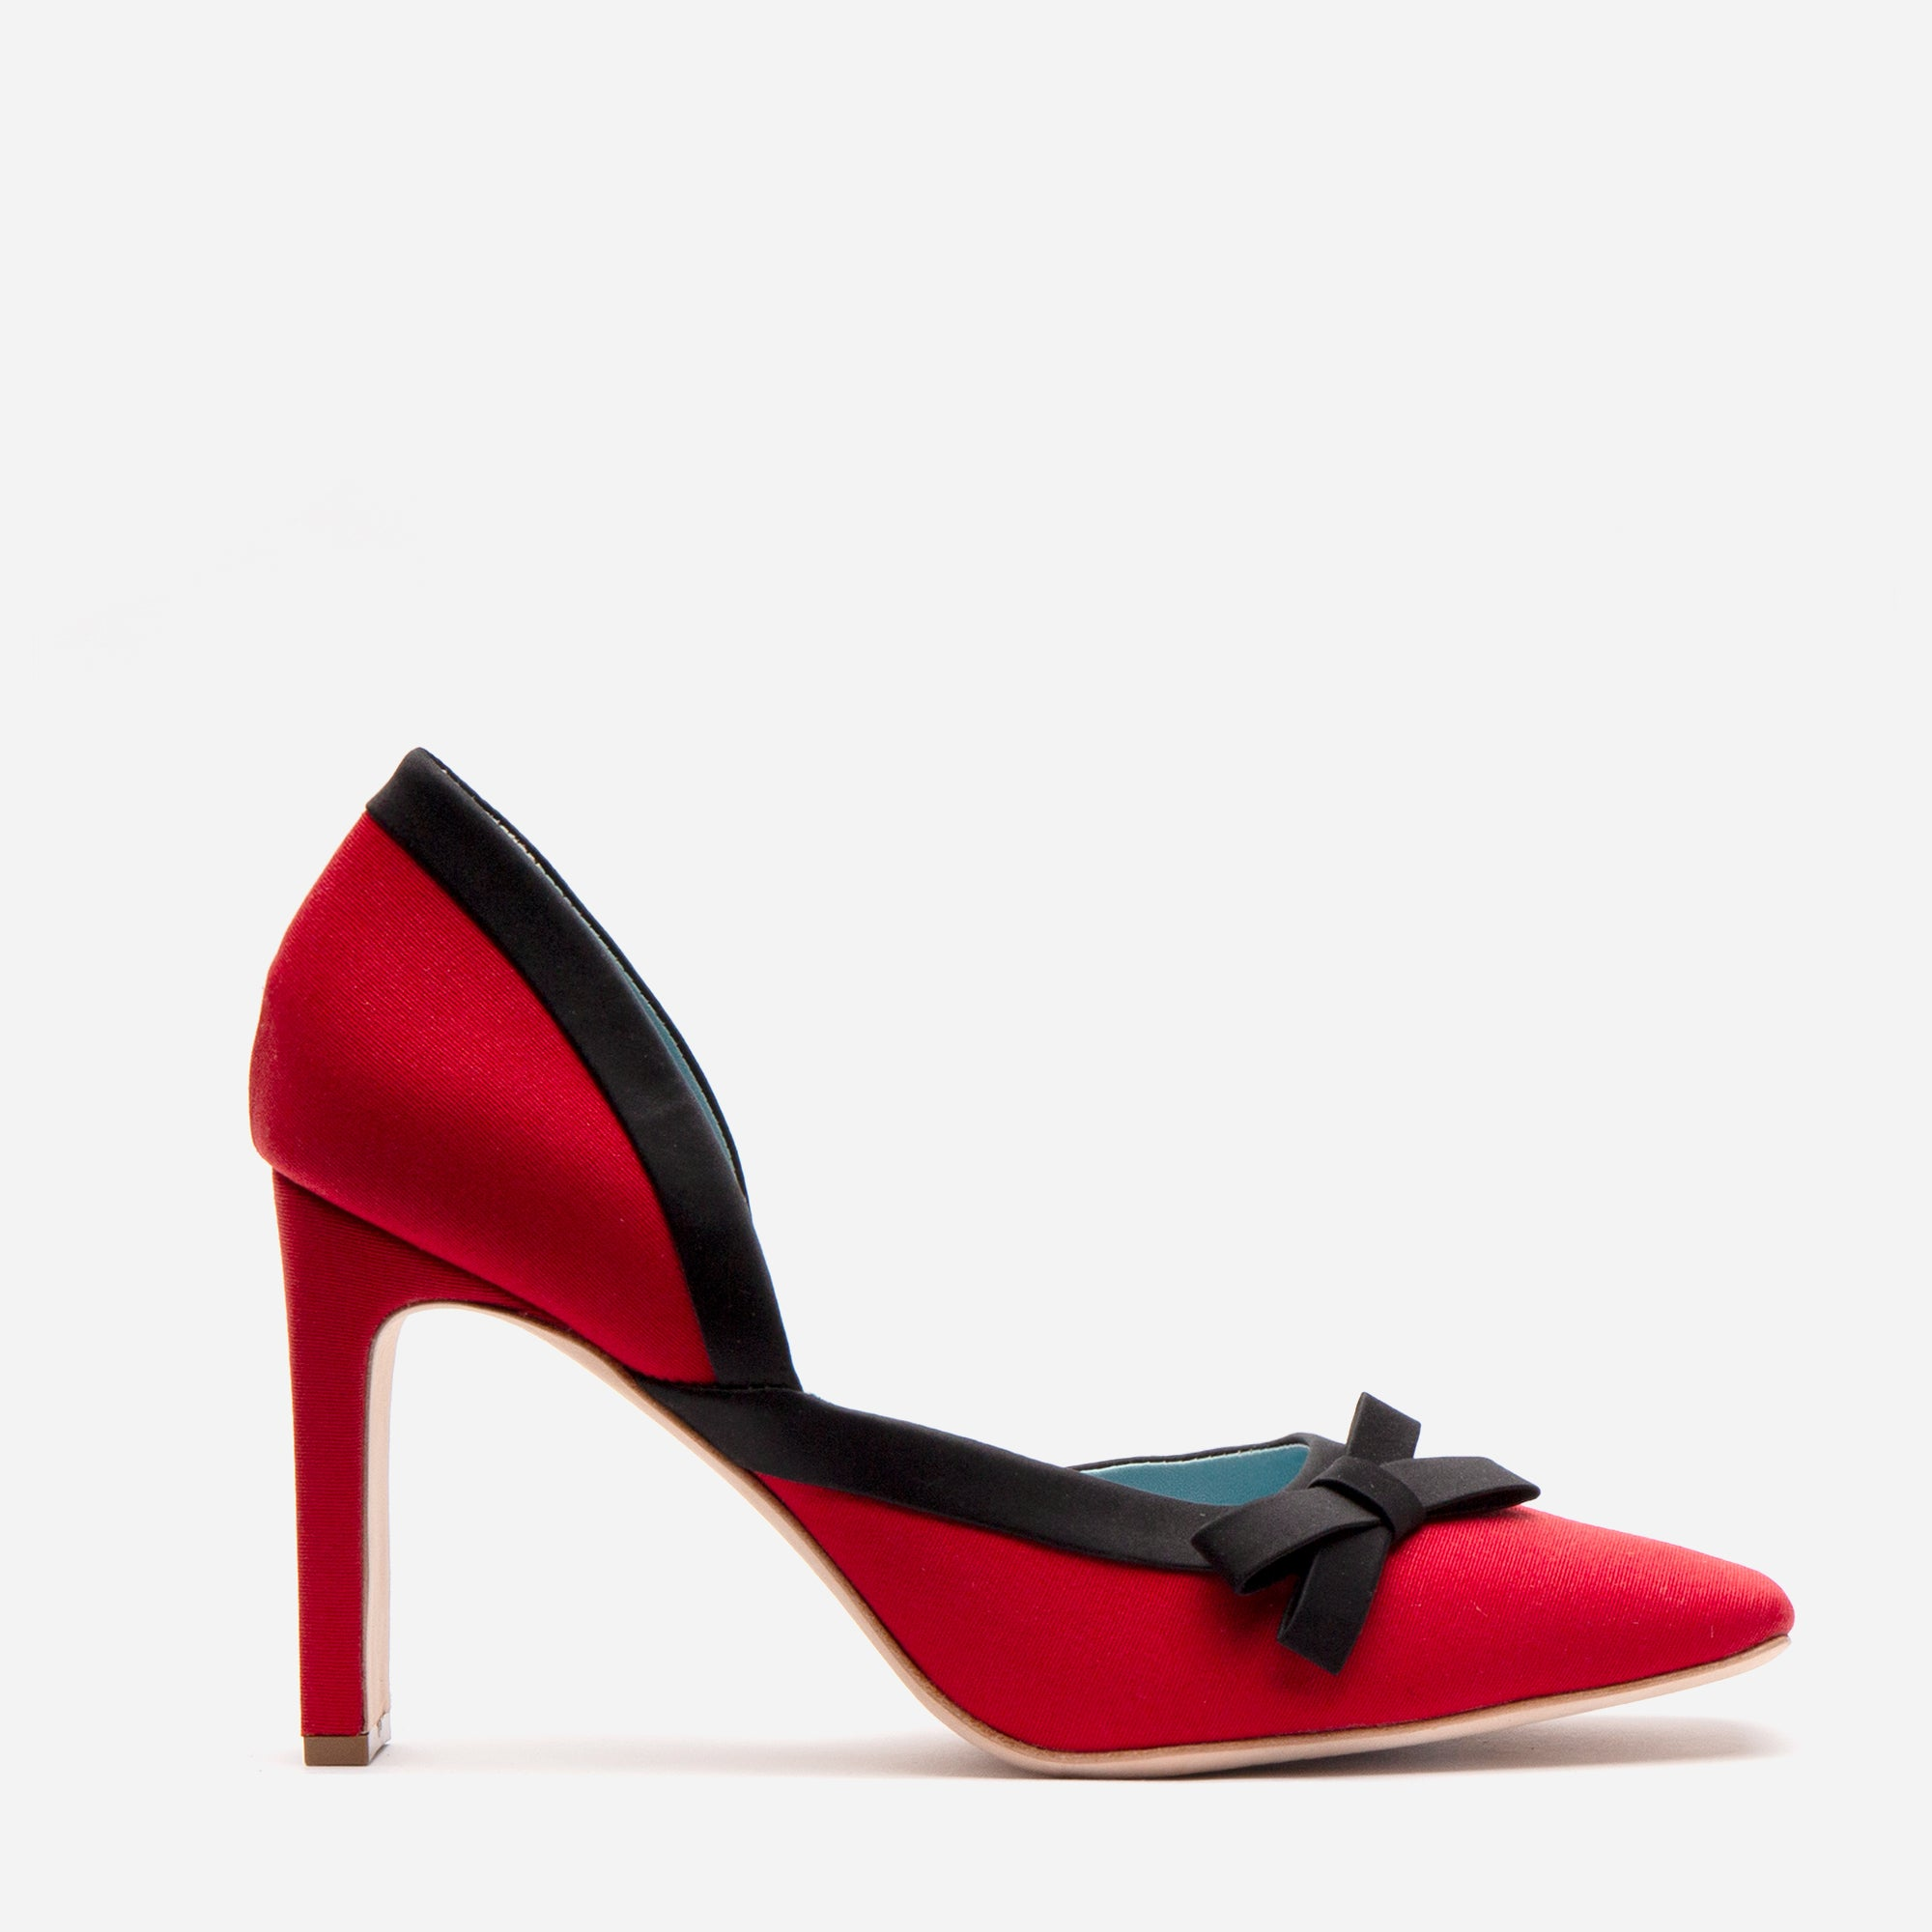 Sinclair Grosgrain Satin Heels Red Black *FINAL SALE*